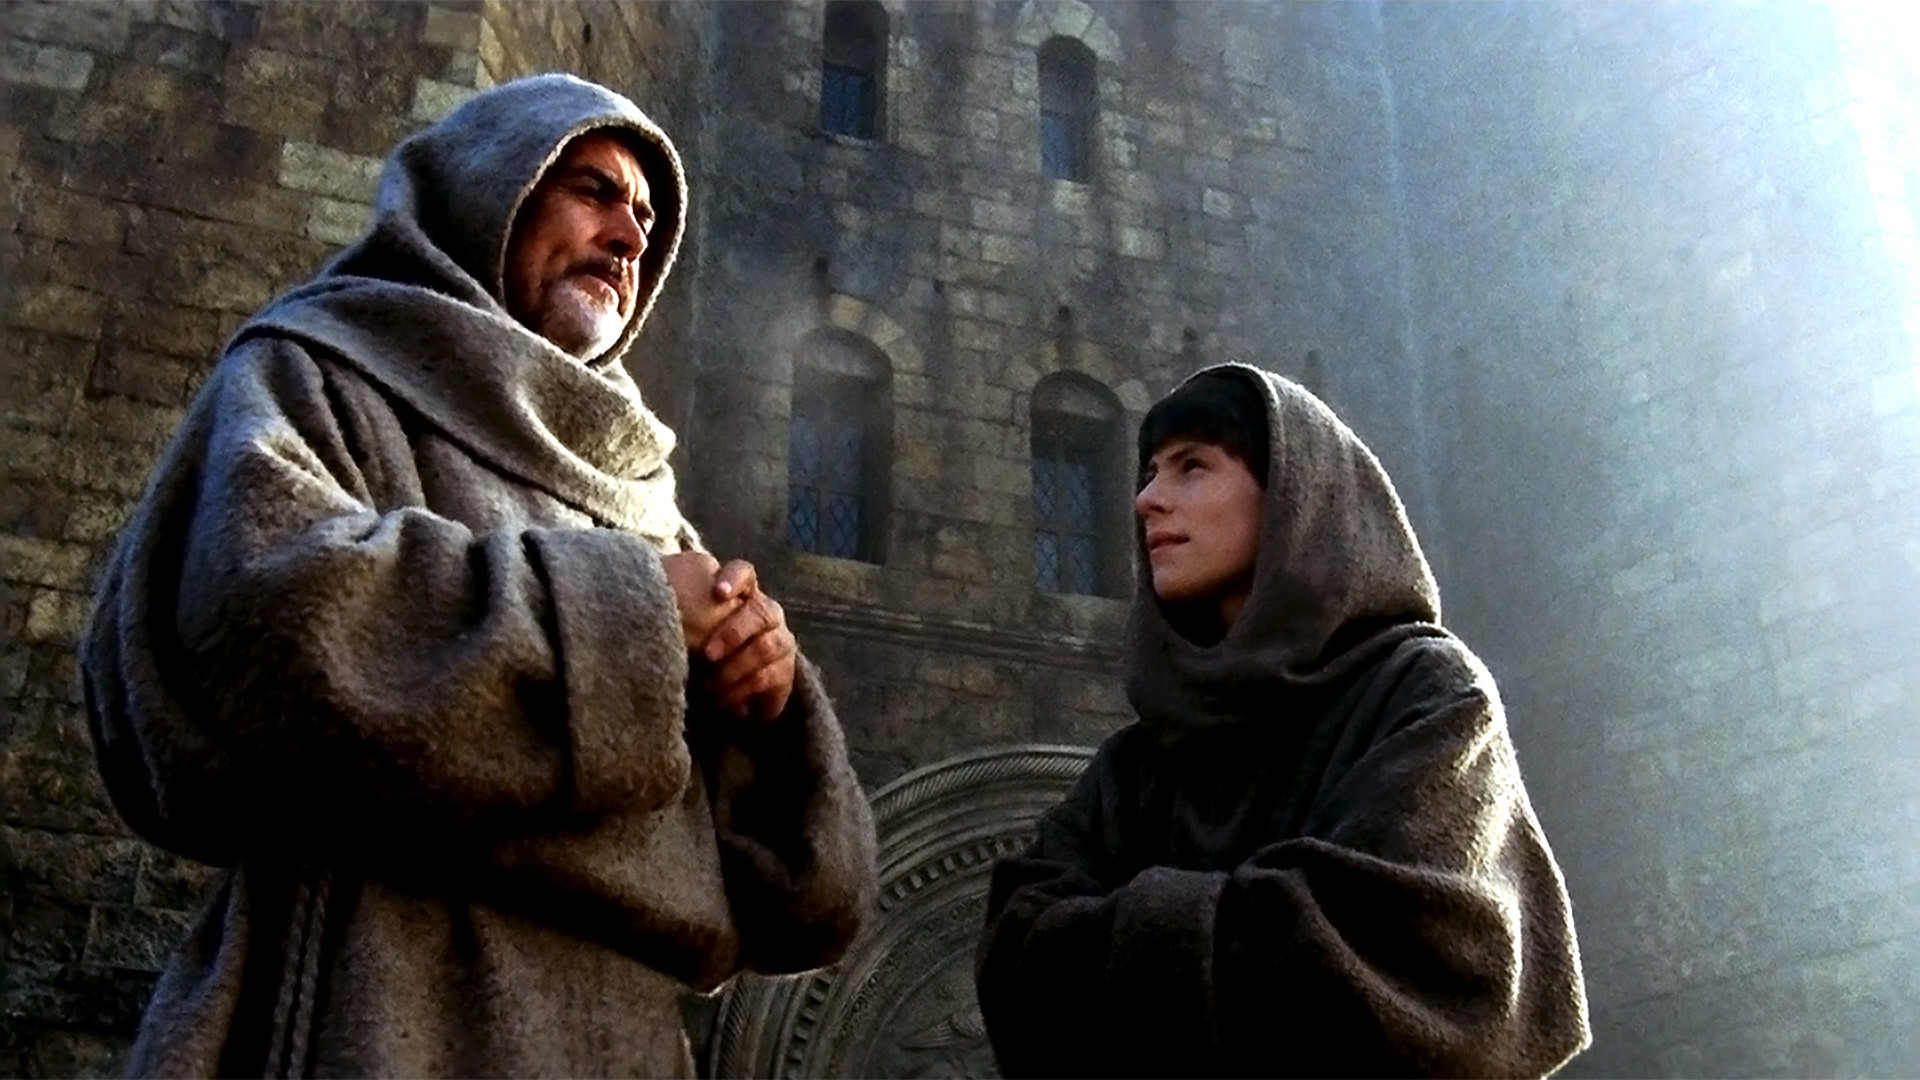 Were the Peasants Really So Clean? The Middle Ages in Film ...